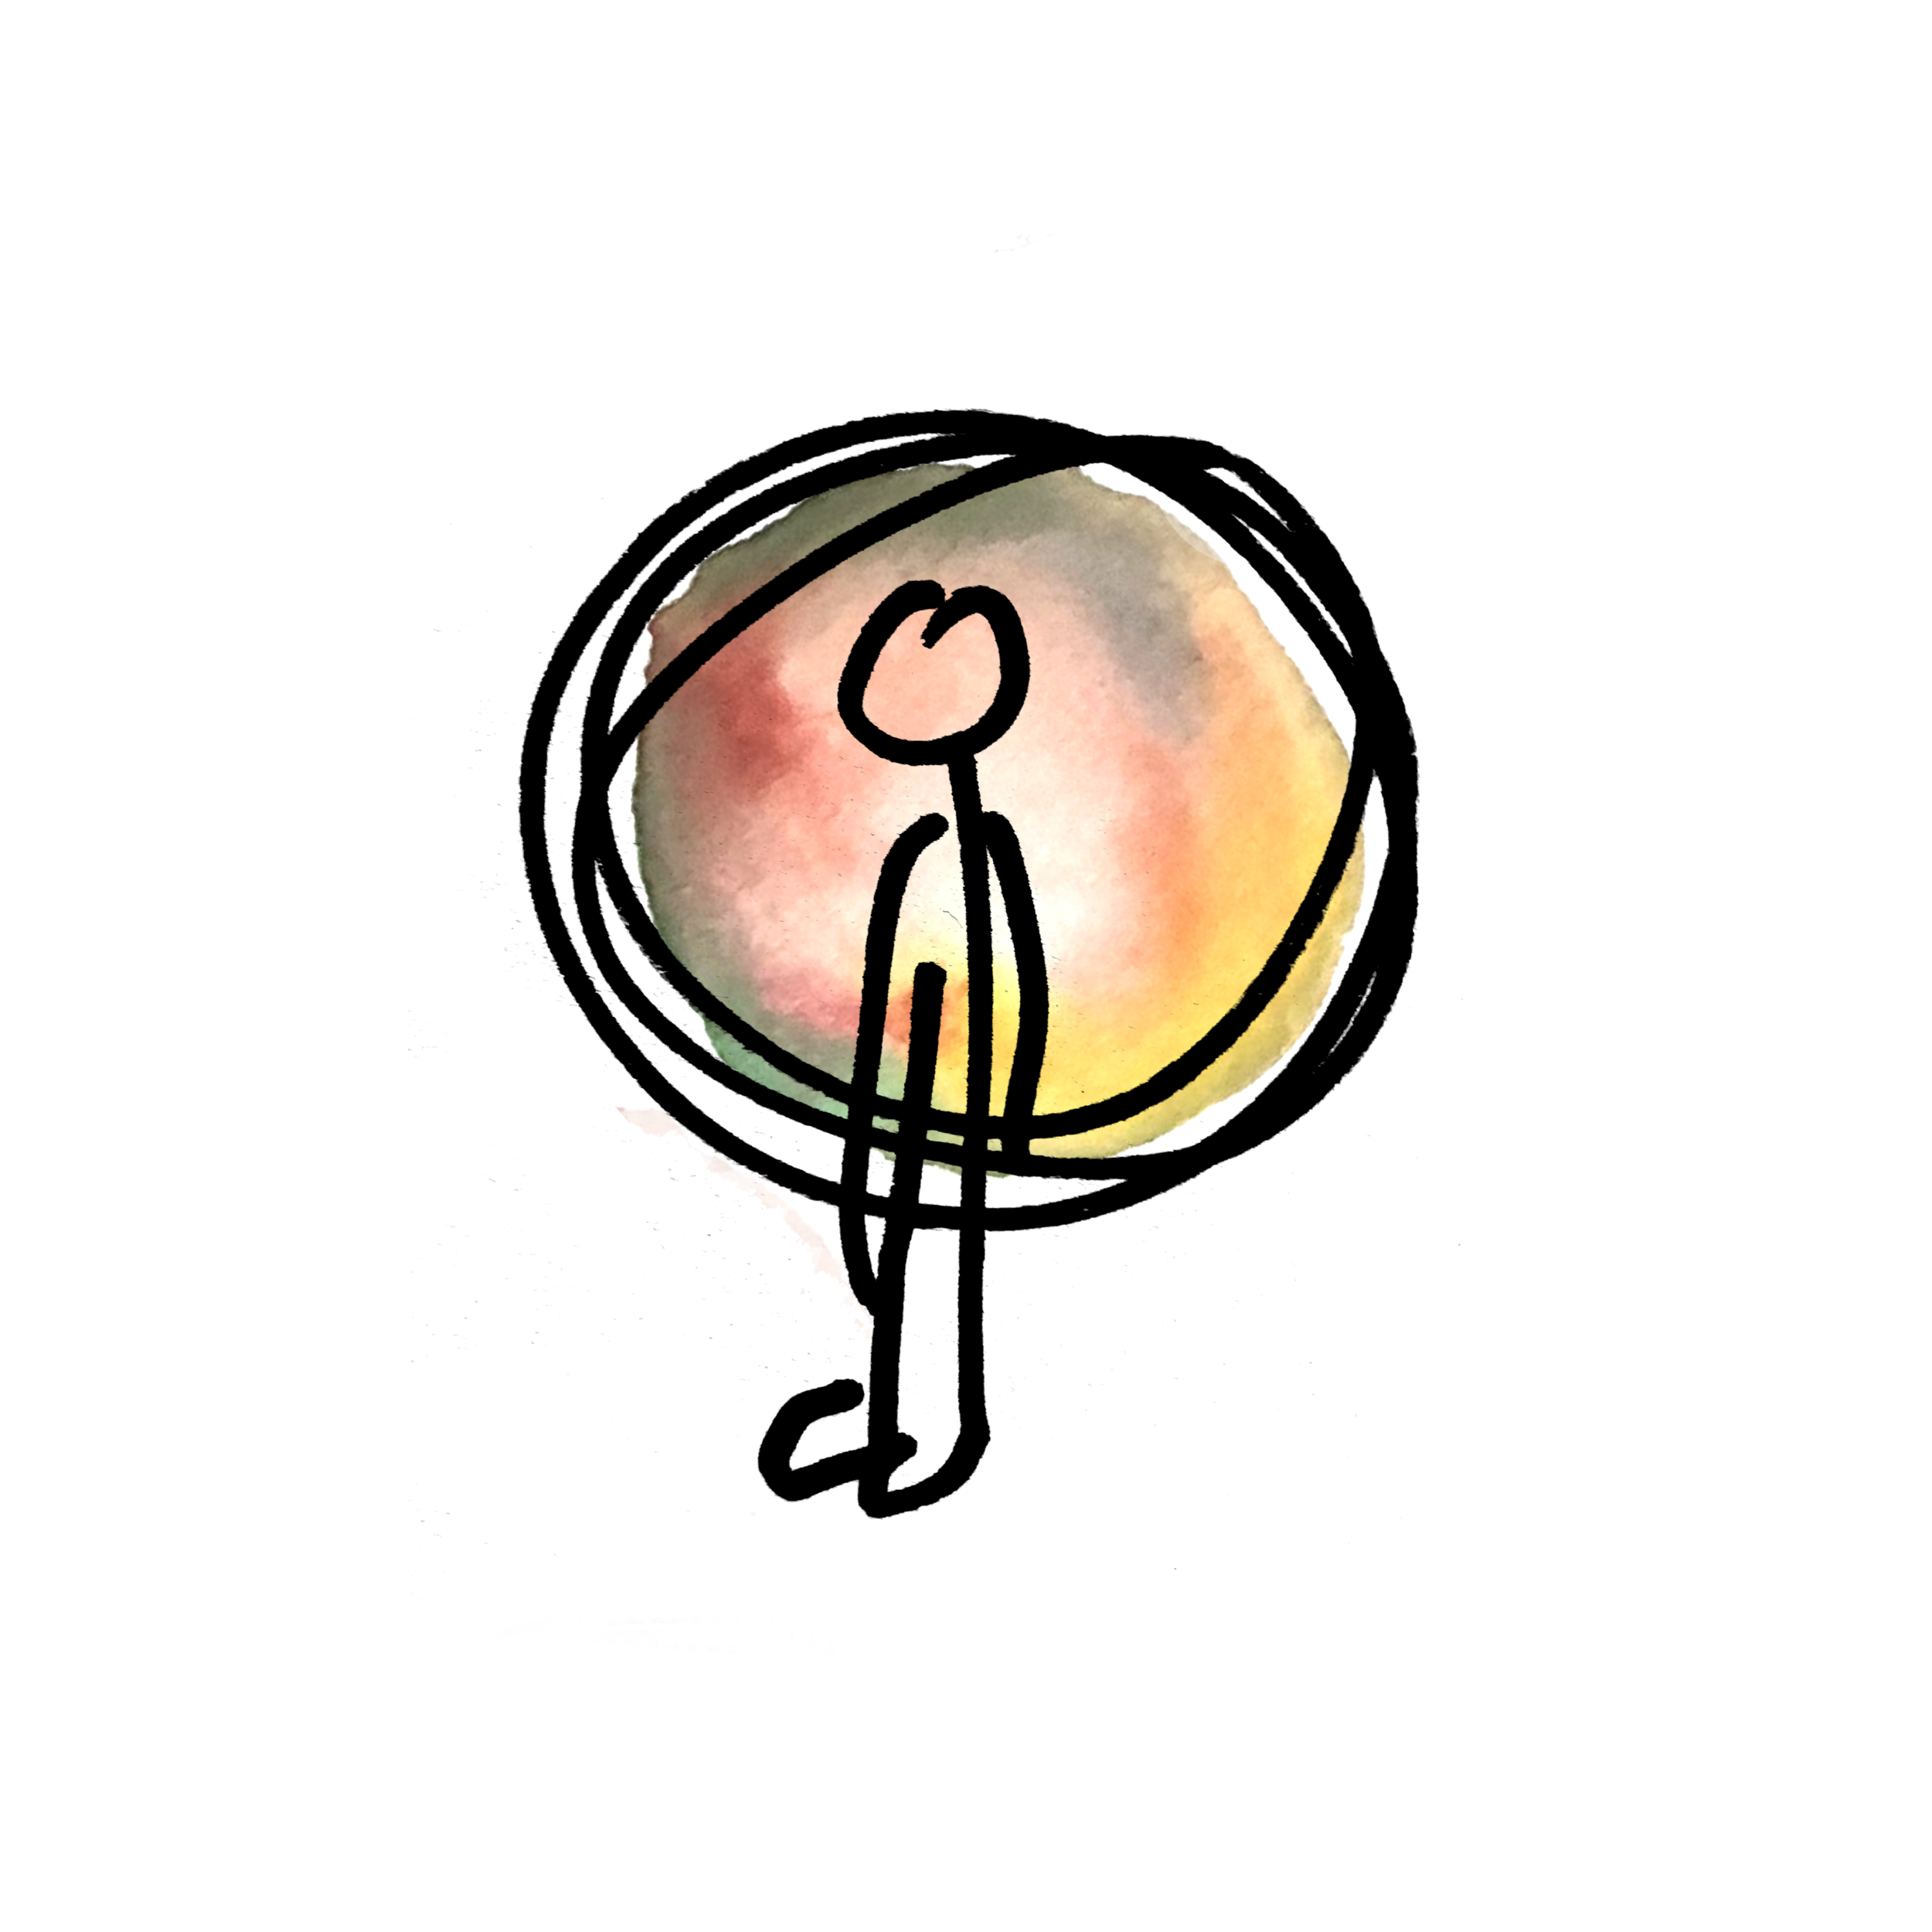 person-ball-6.png